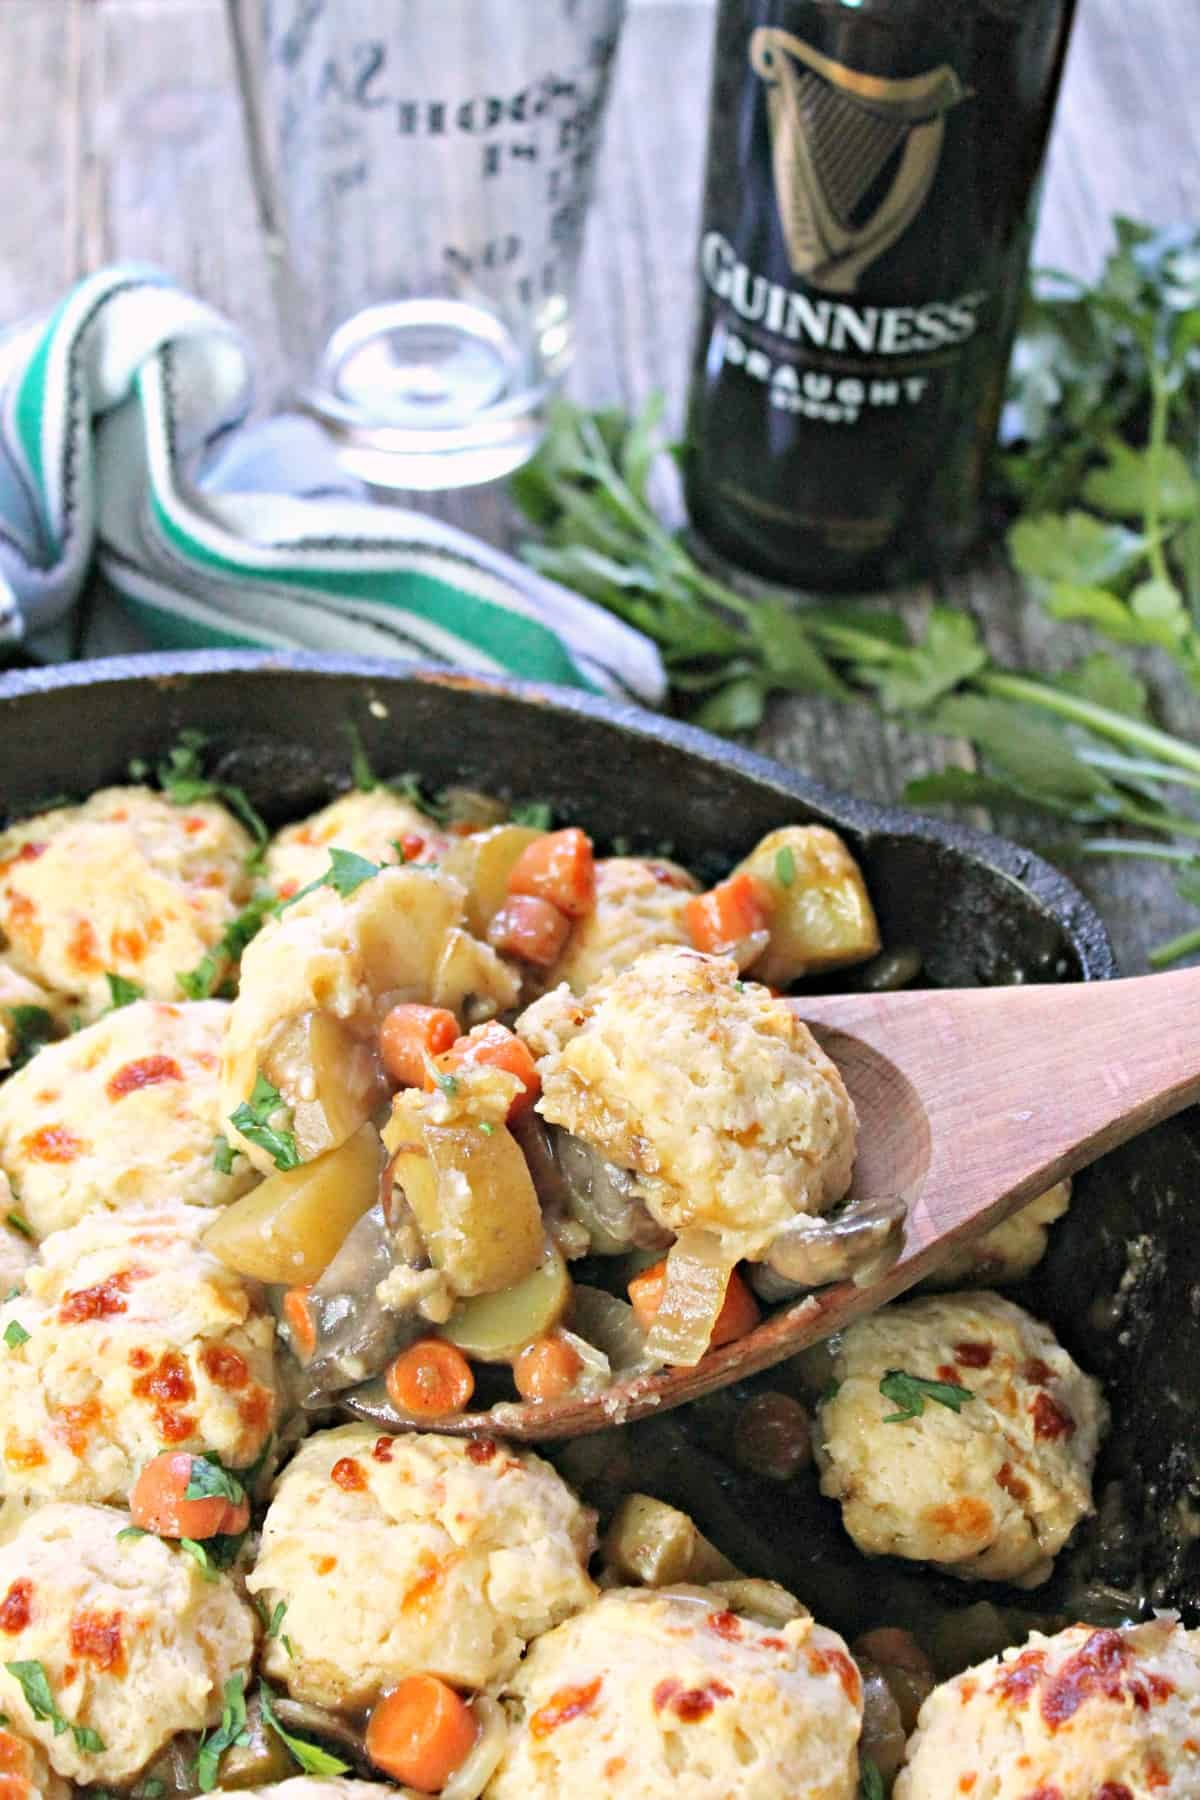 Savory Guinness & Veggie Cobbler! This vegetarian, one pan meal will make all who seek savory Guinness recipes on St. Patrick's Day feel pretty lucky!